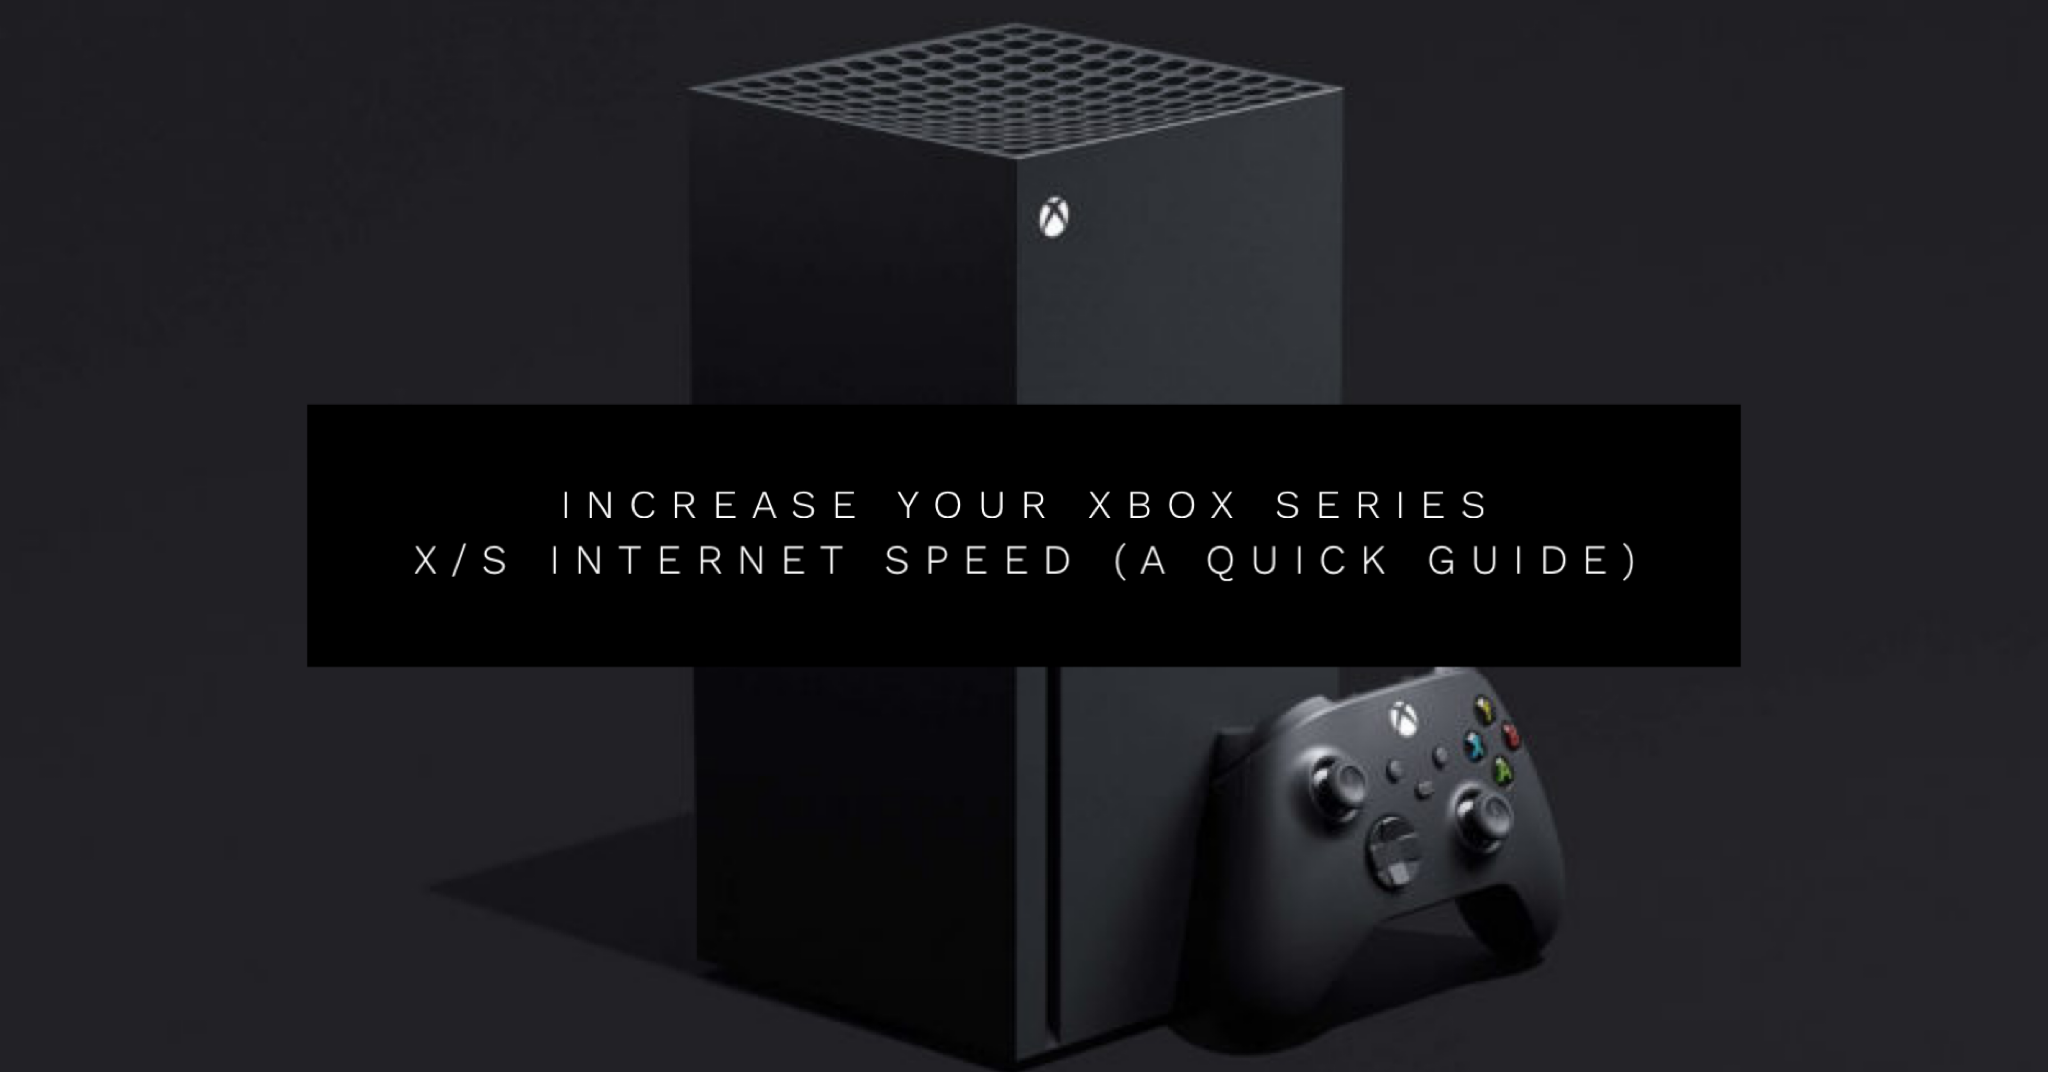 Increase your Xbox Series X/S Internet Speed (A Quick Guide) - Core Xbox